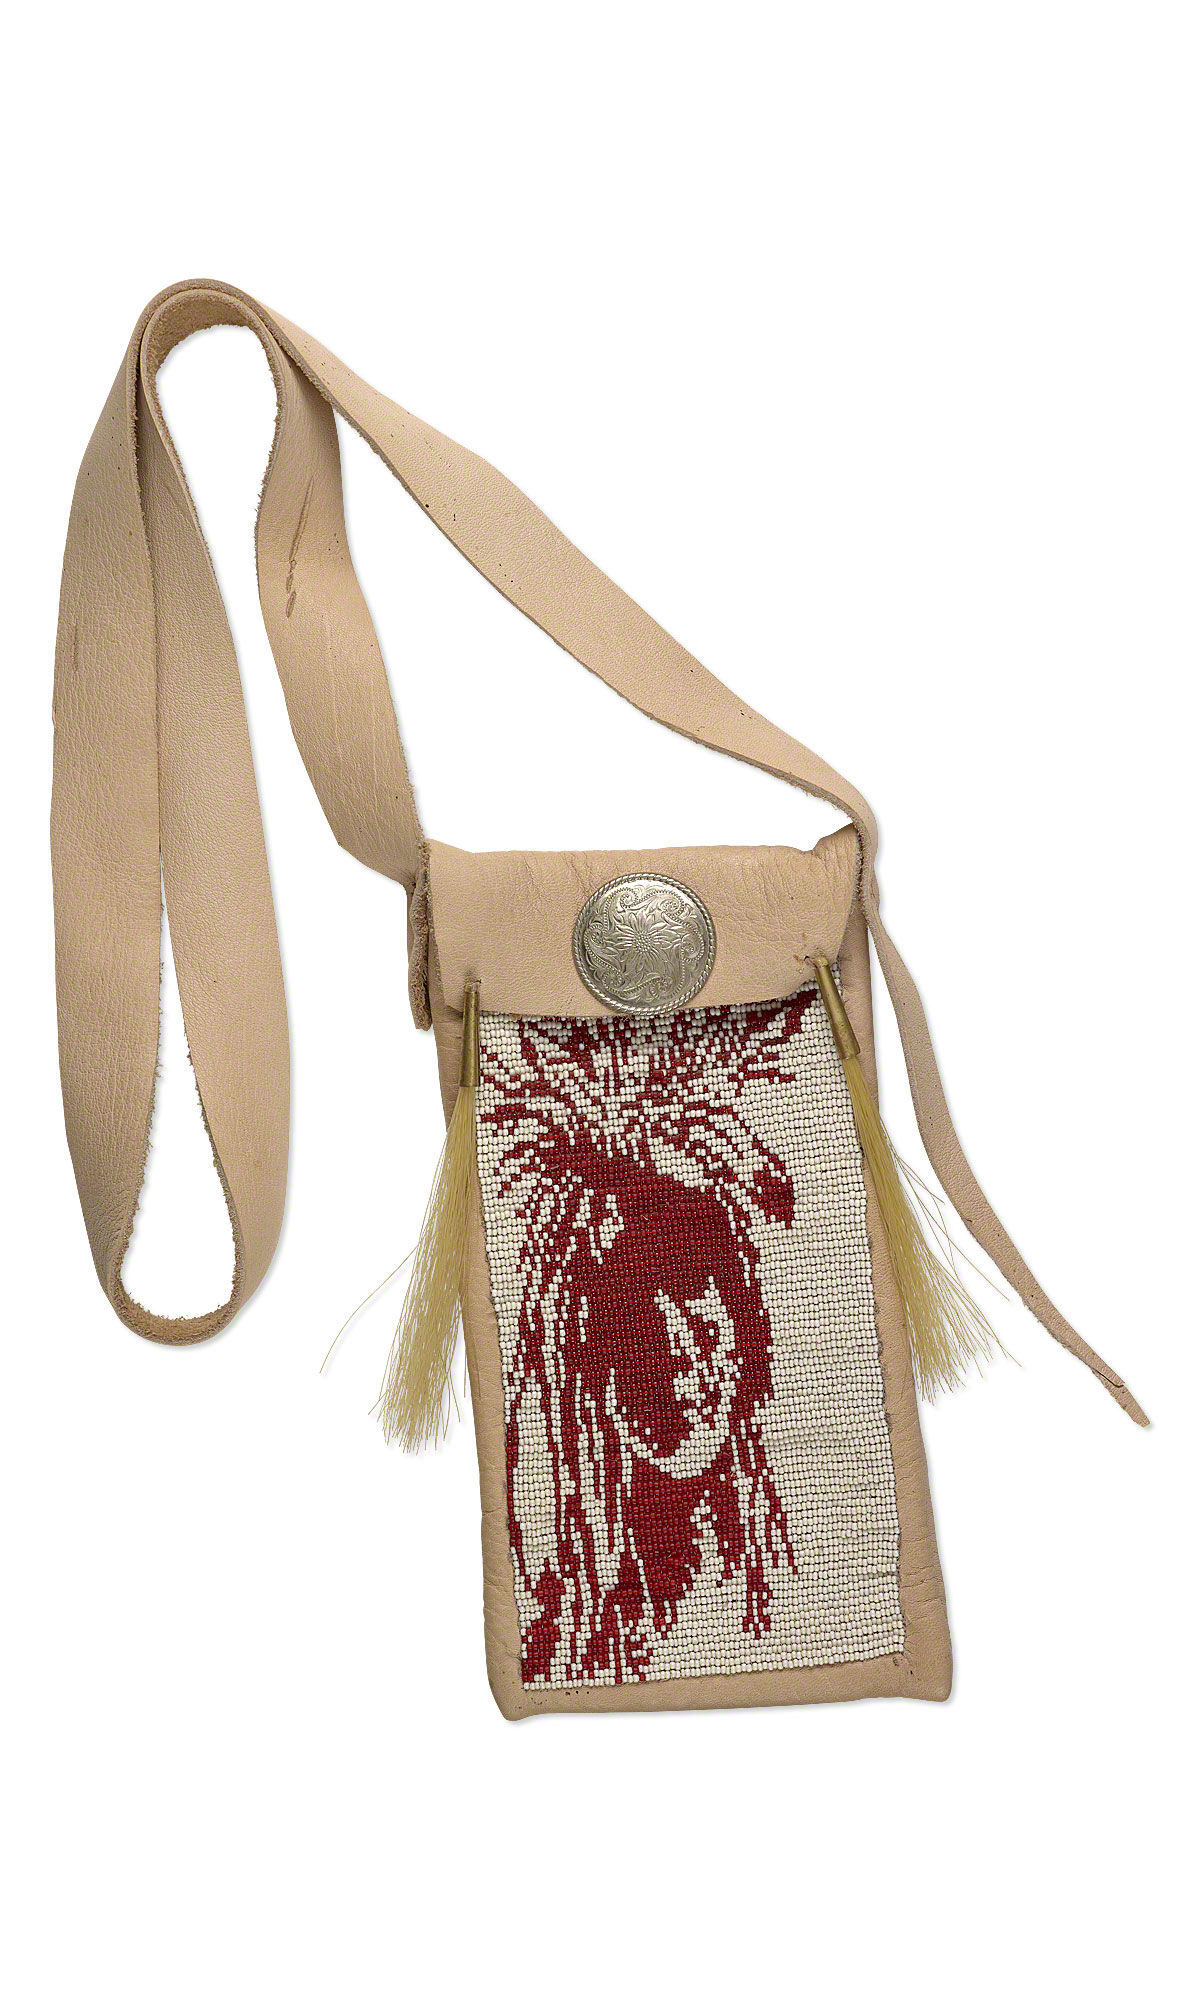 Jewelry Design Native American Bag With Seed Beads And